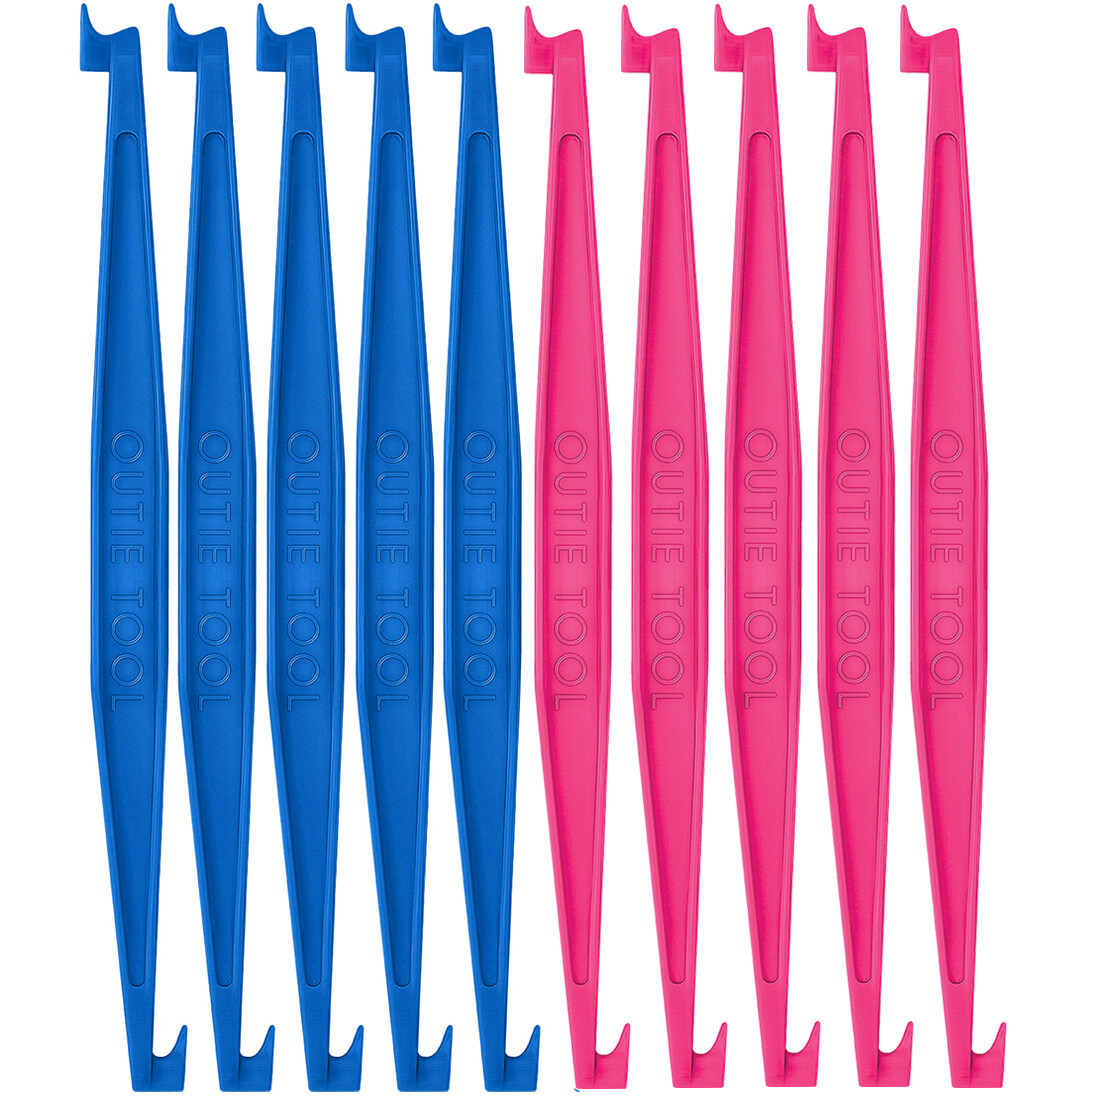 60 OUTIE TOOLS - 30 Hot Pink, 30 Sky Blue Bulk UNPACKAGED